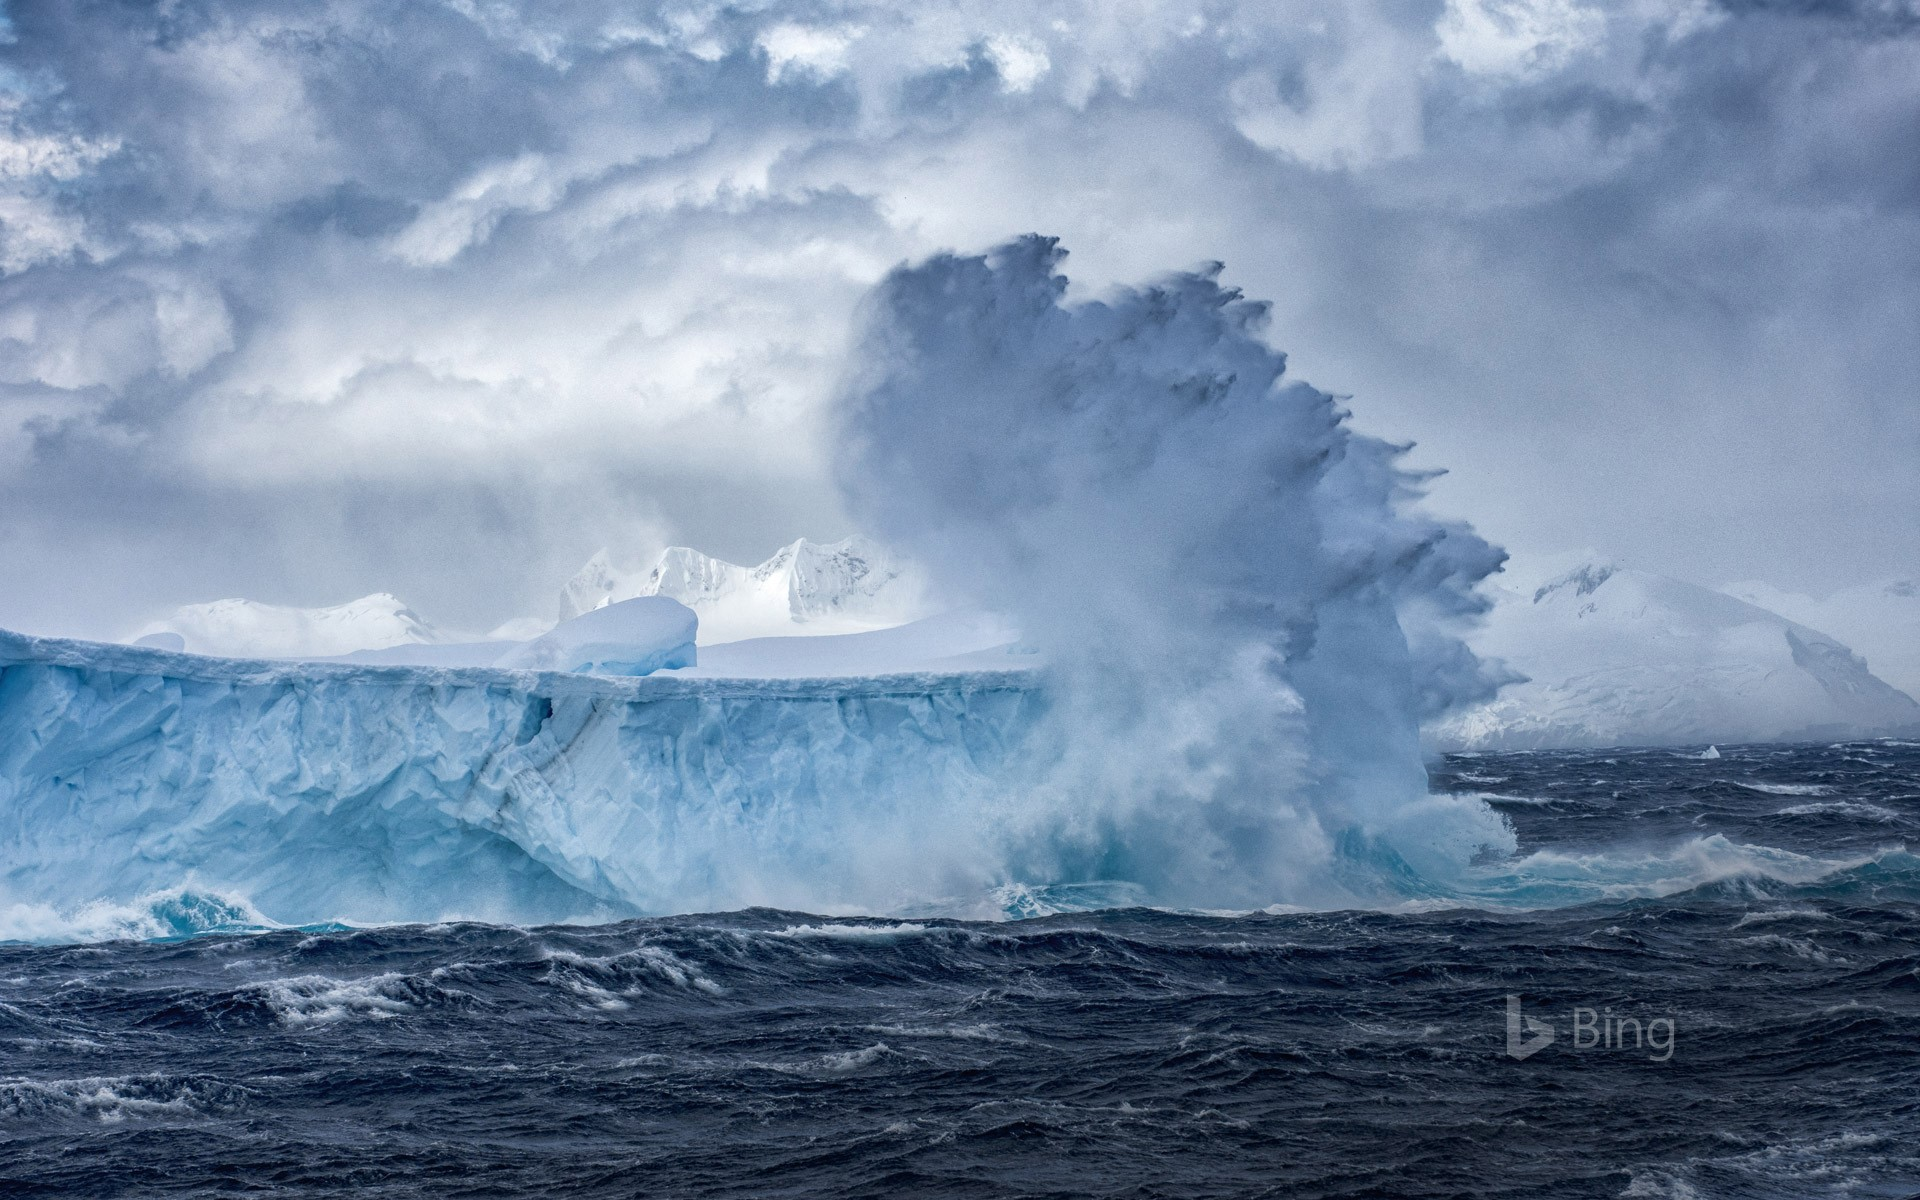 Iceberg floating off the coast of Antarctica